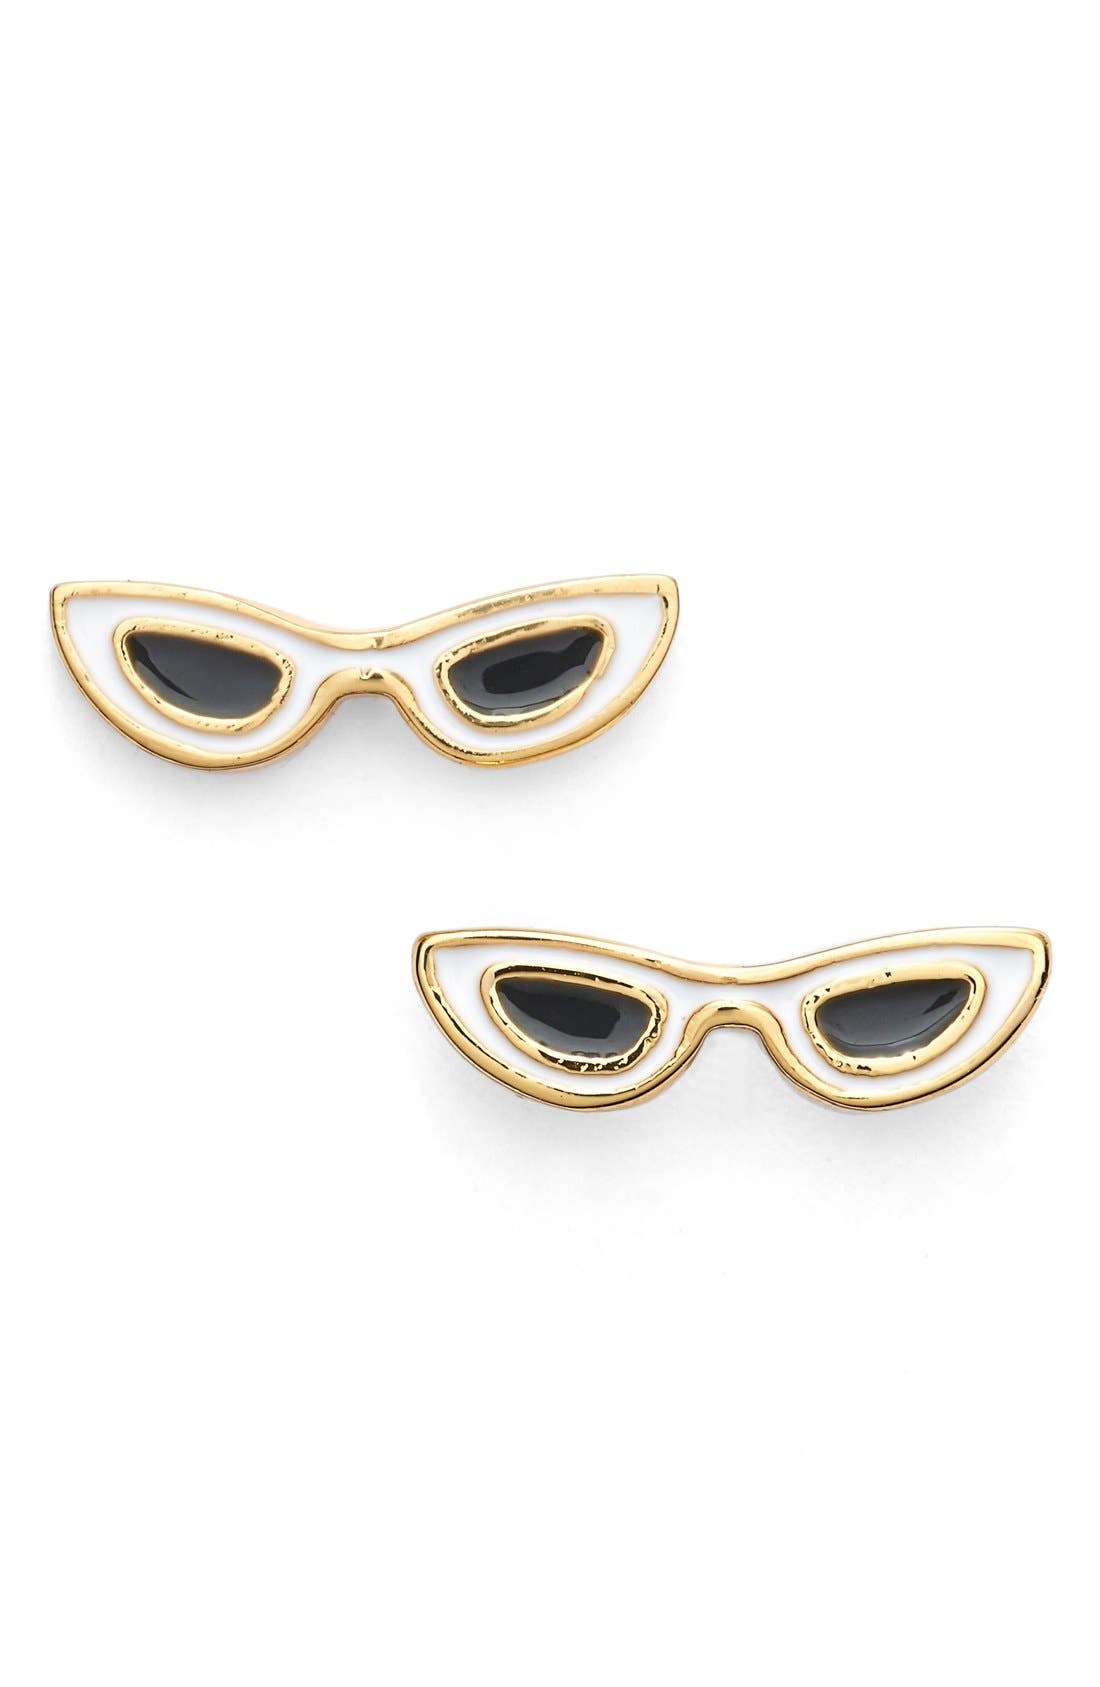 'in the shade' sunglass stud earrings,                             Main thumbnail 1, color,                             100